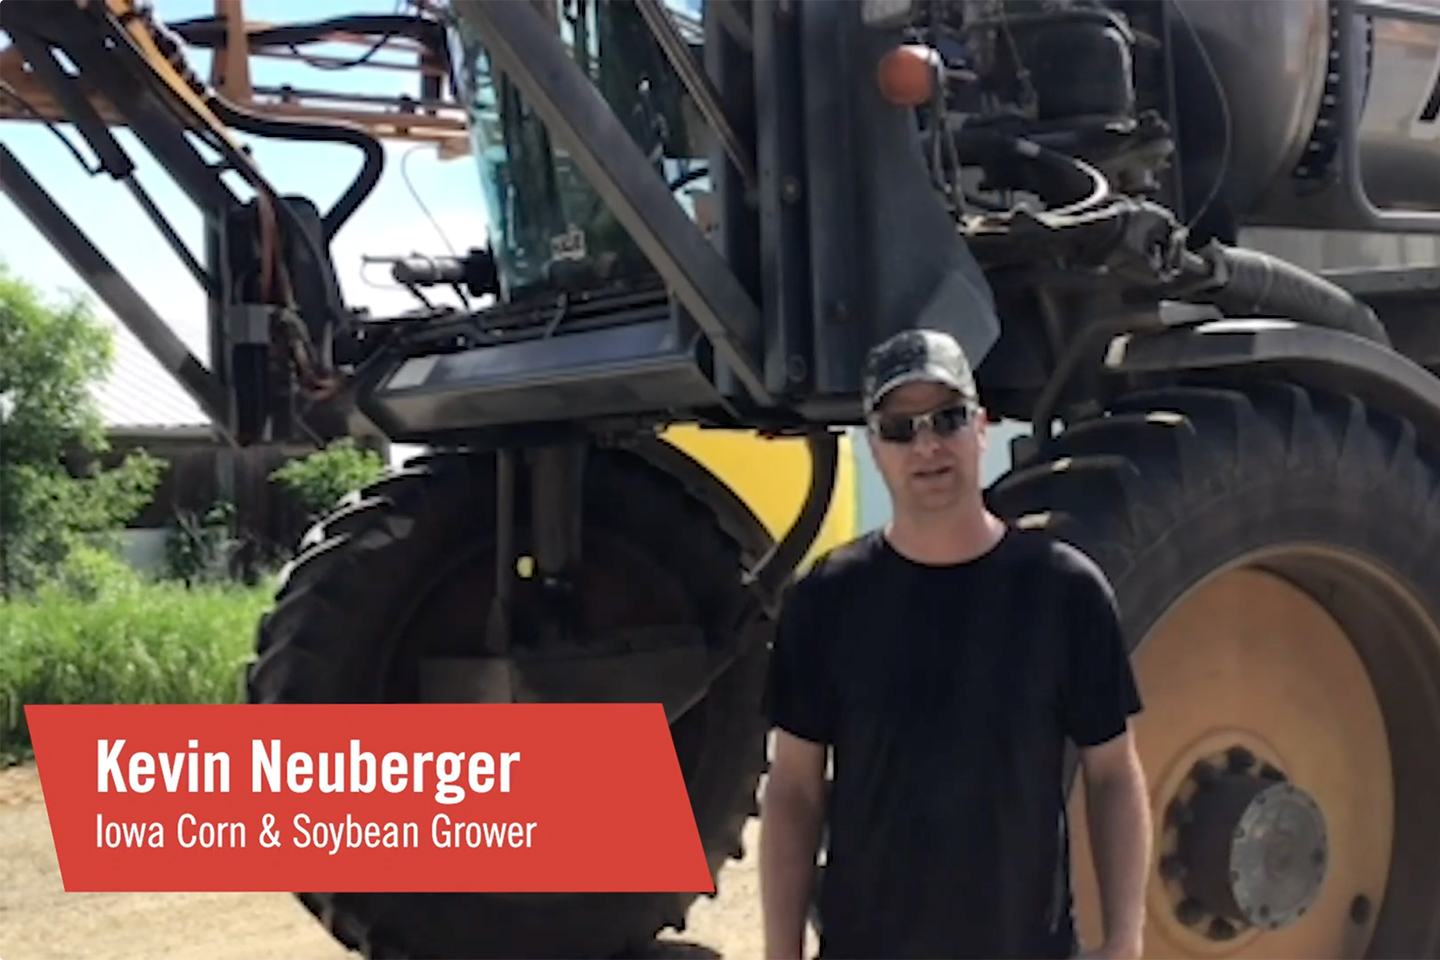 Kevin Neuberger, Iowa Corn & Soybean Grower